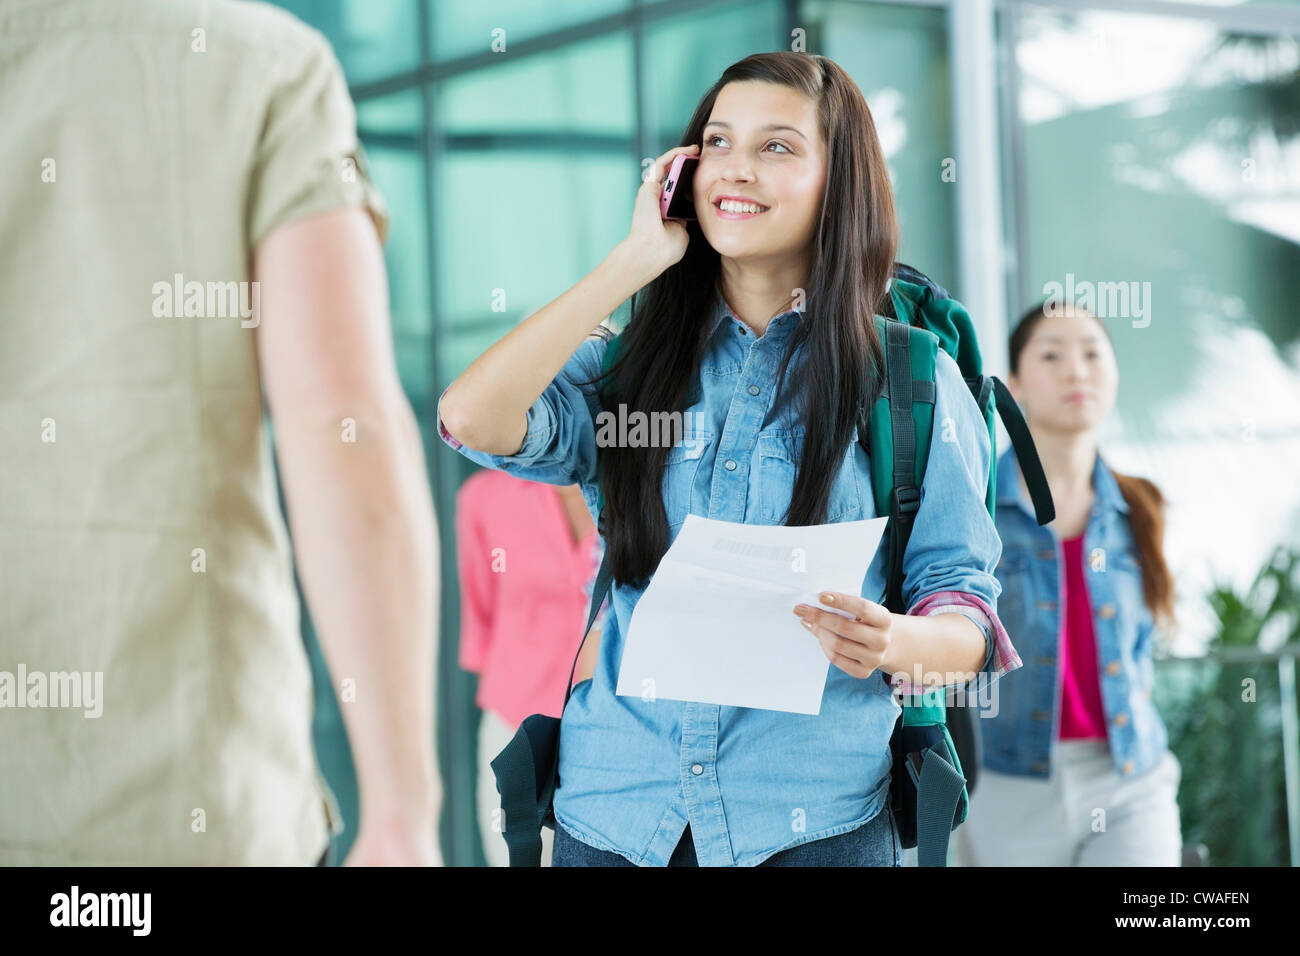 Young female backpacker in airport - Stock Image